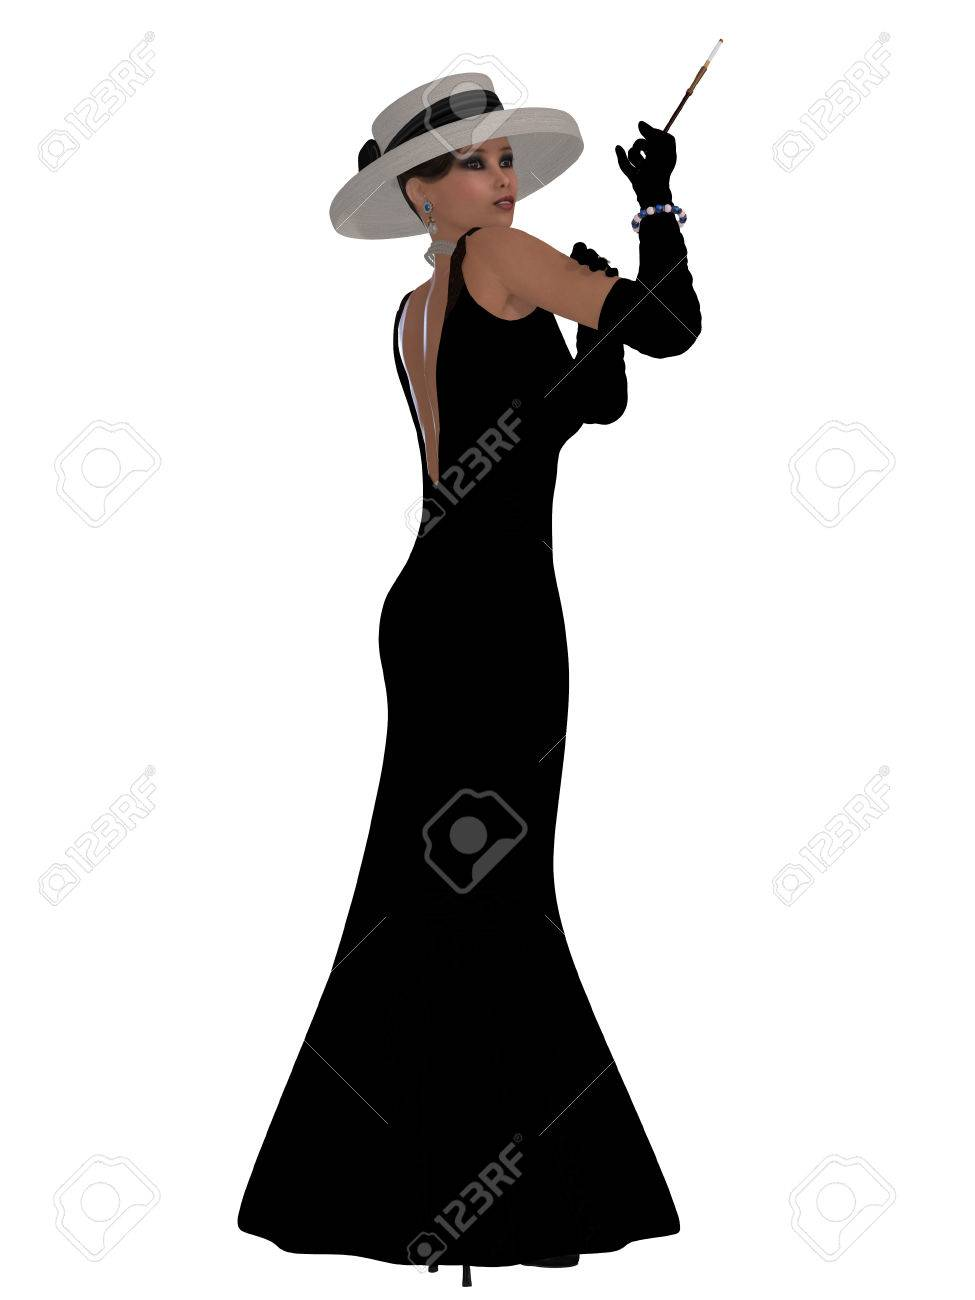 Black dress gloves - Retro Black Dress A Beautiful Woman In A Black Dress Hat And Gloves In